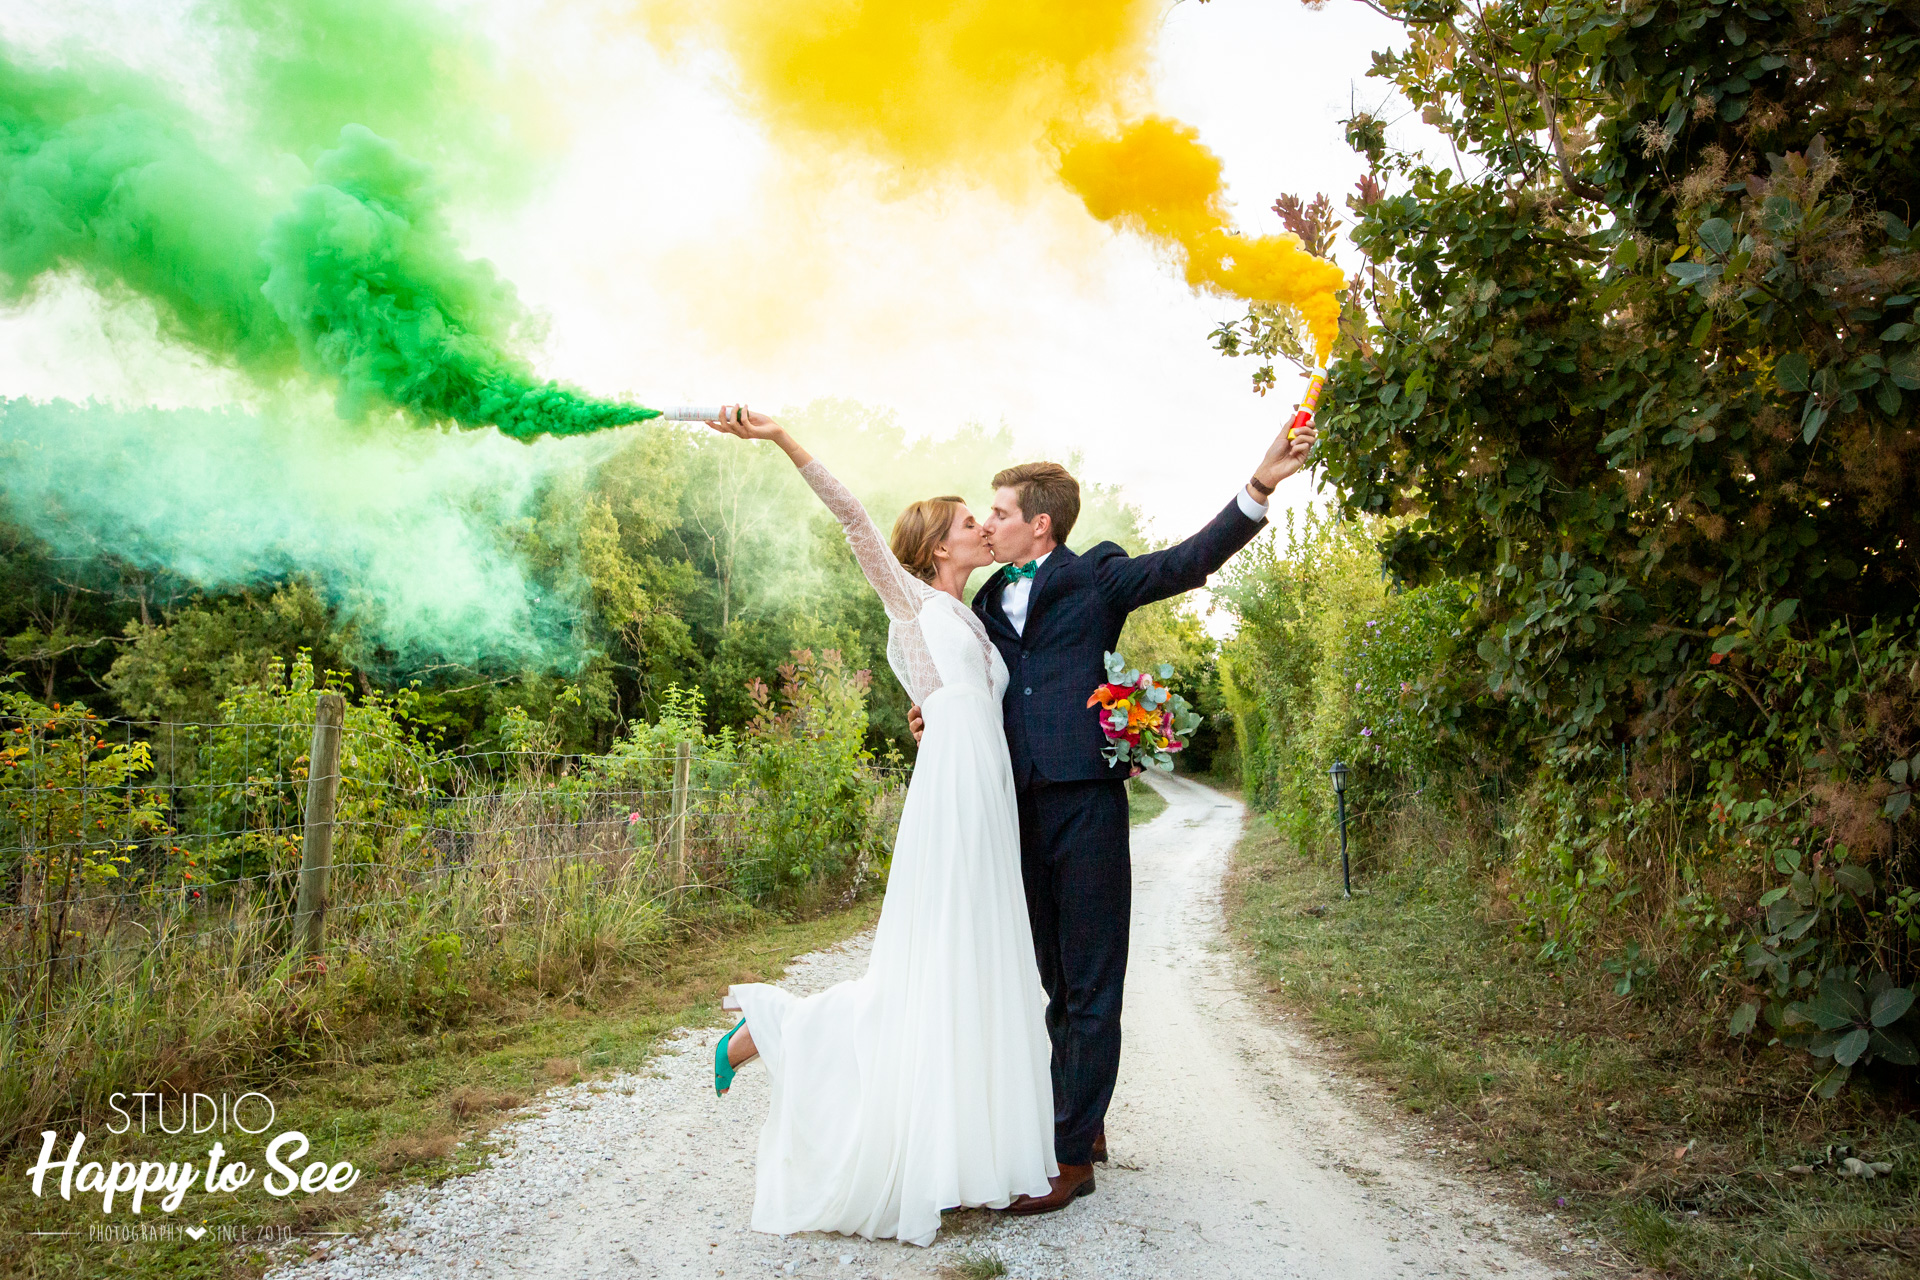 Photographe Mariage Toulouse Albi Domaine Combe Ramond Fumigenes